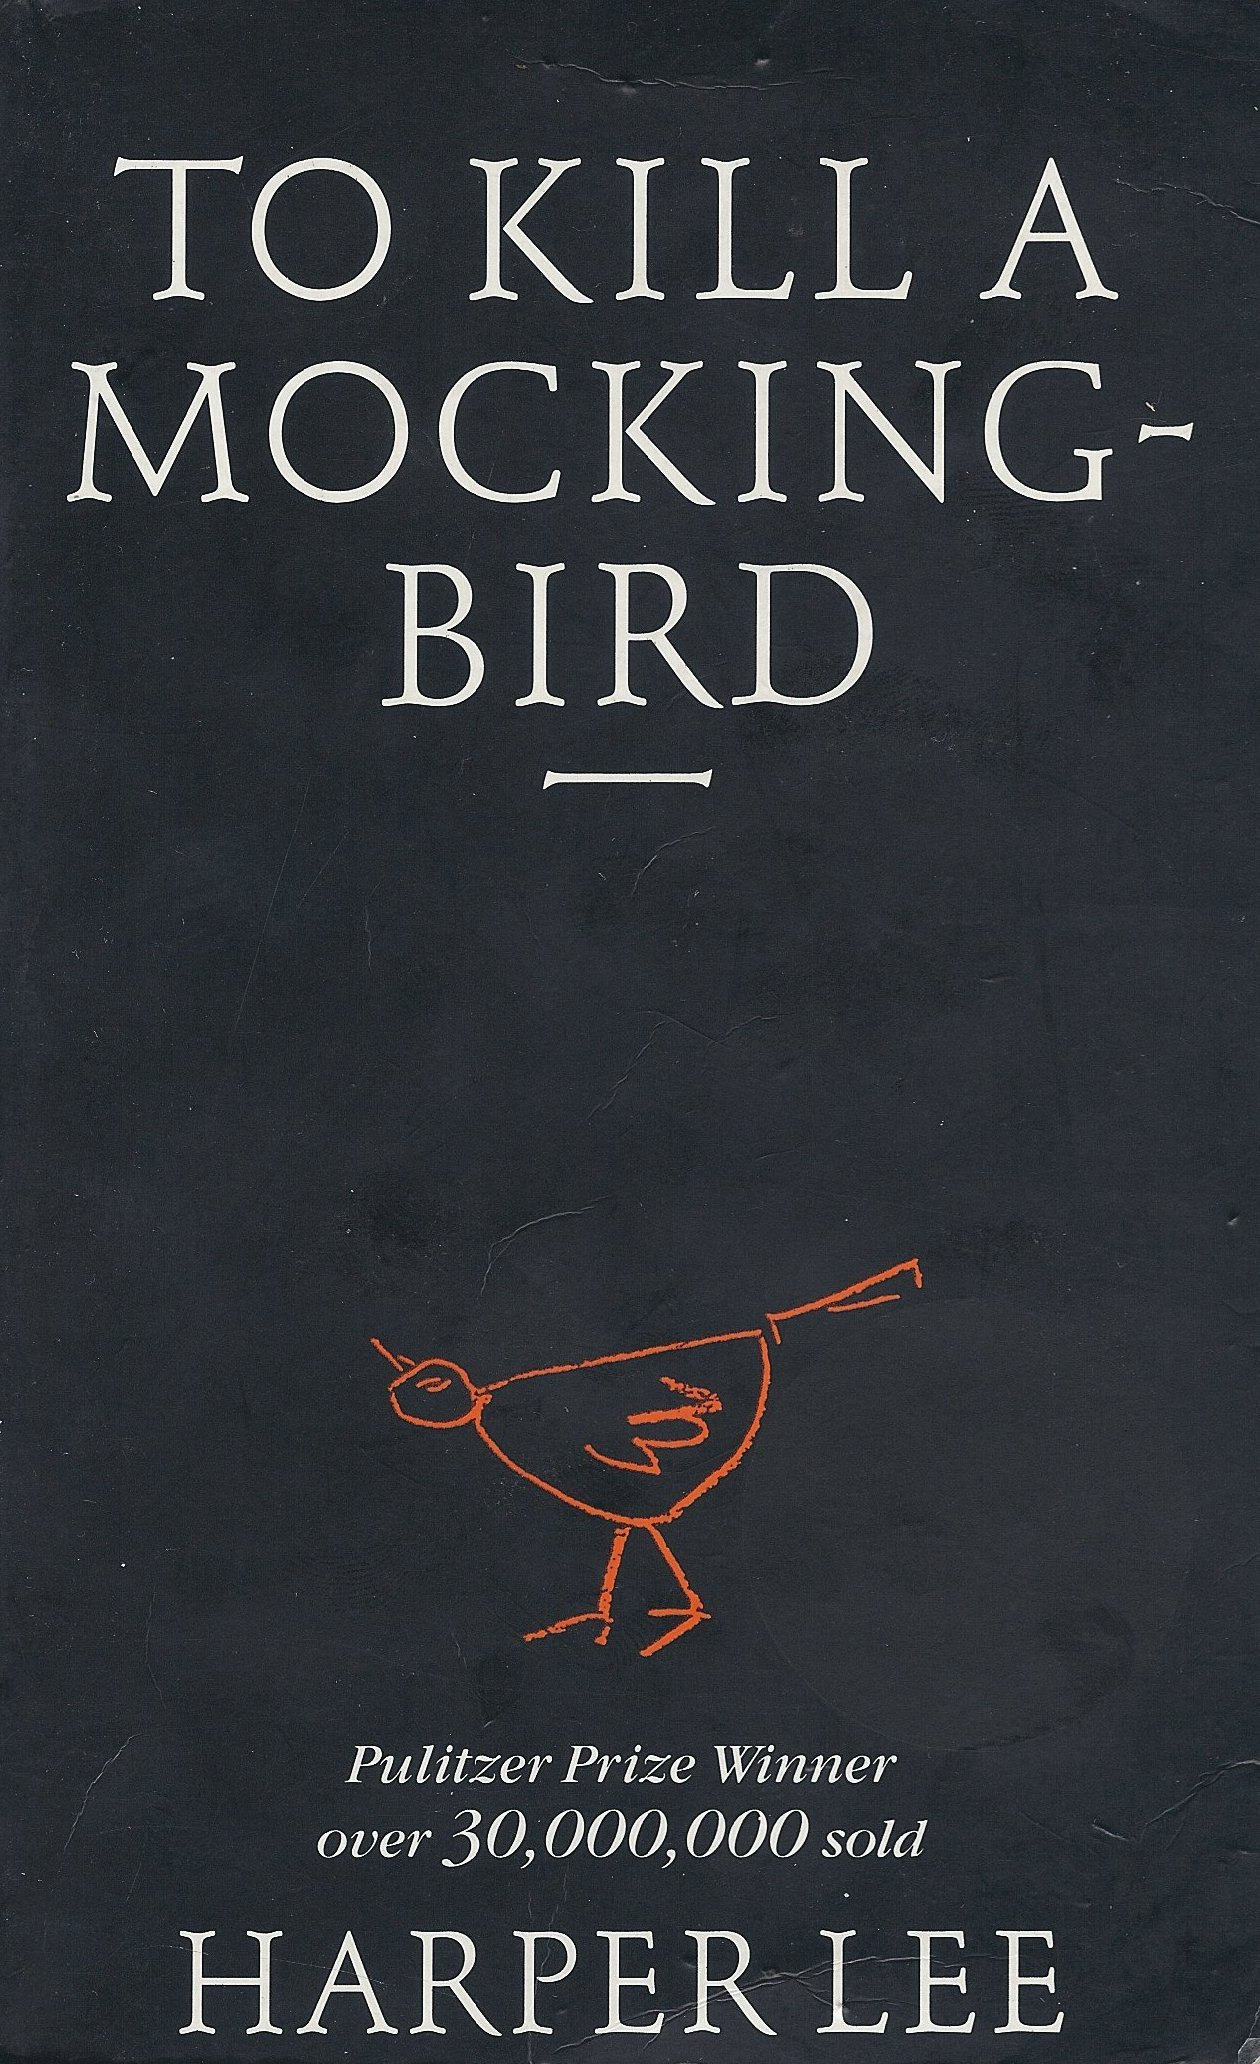 a literary analysis of the novel to kill a mockingbird by harper lee Fears about following up her classic novel to kill a mockingbird with the idea that harper lee never wanted this book mystery of the literary.